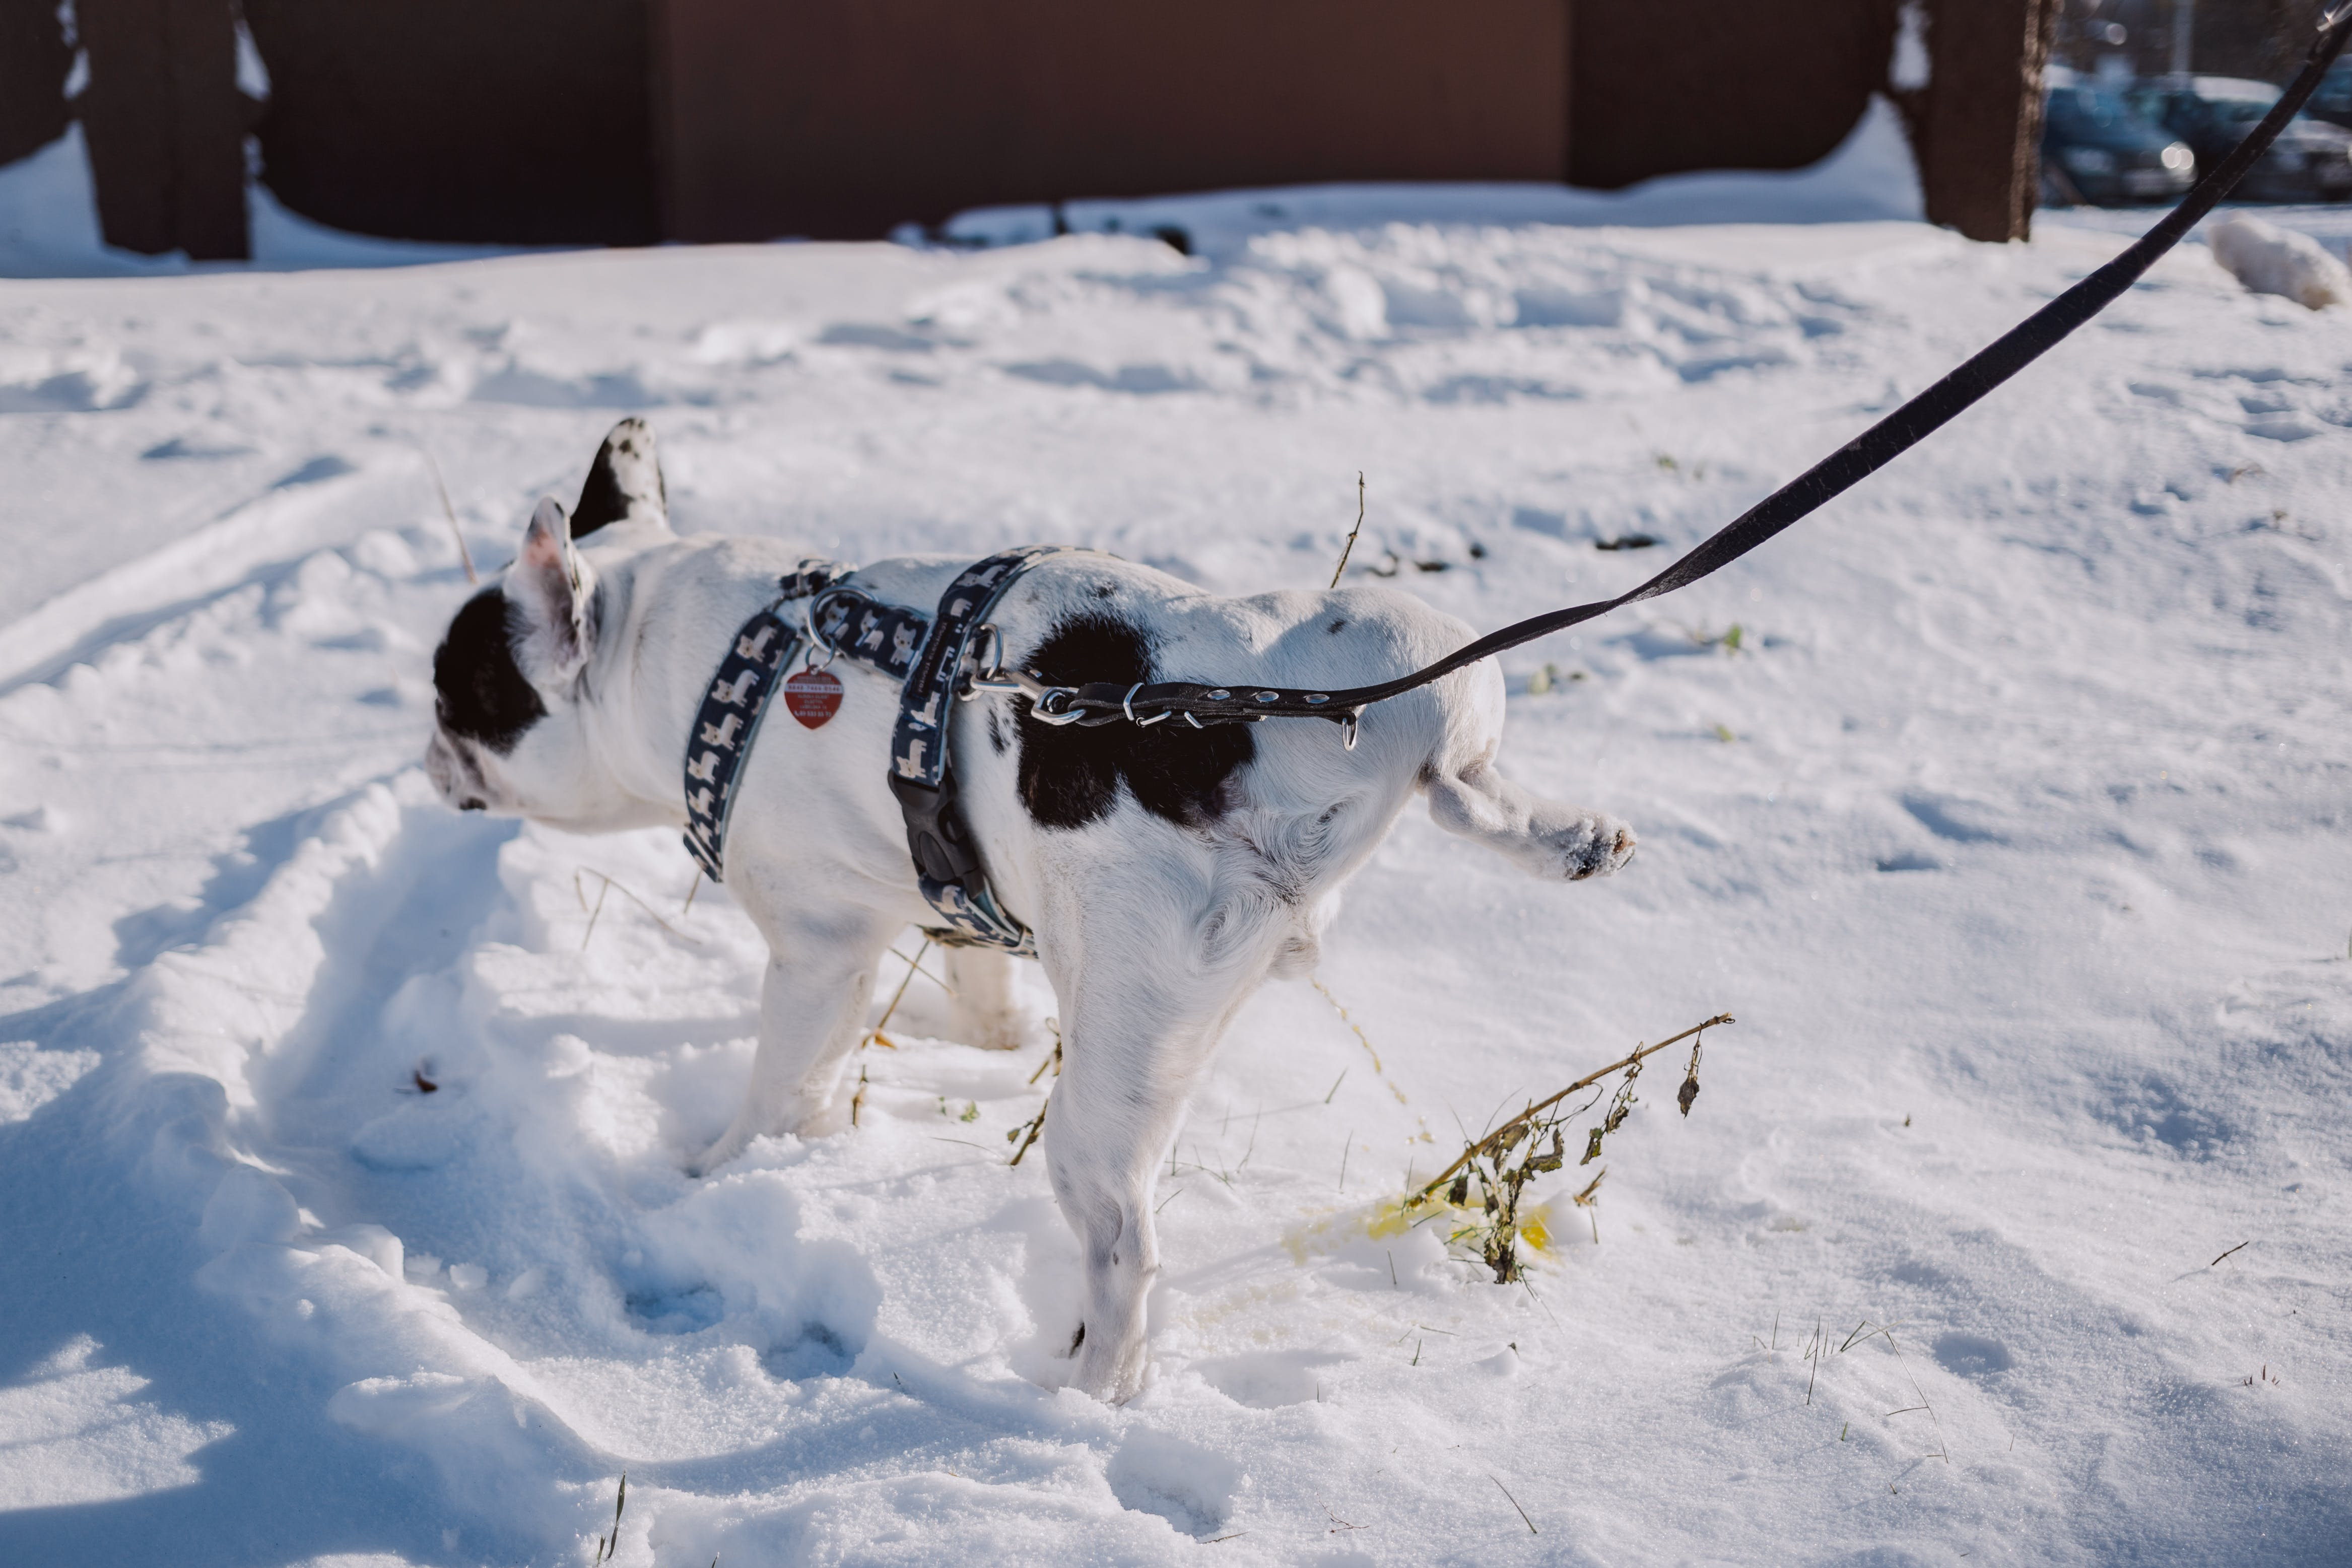 Adult Short-coated White and Black Dog With Black Harness on Top of Snow